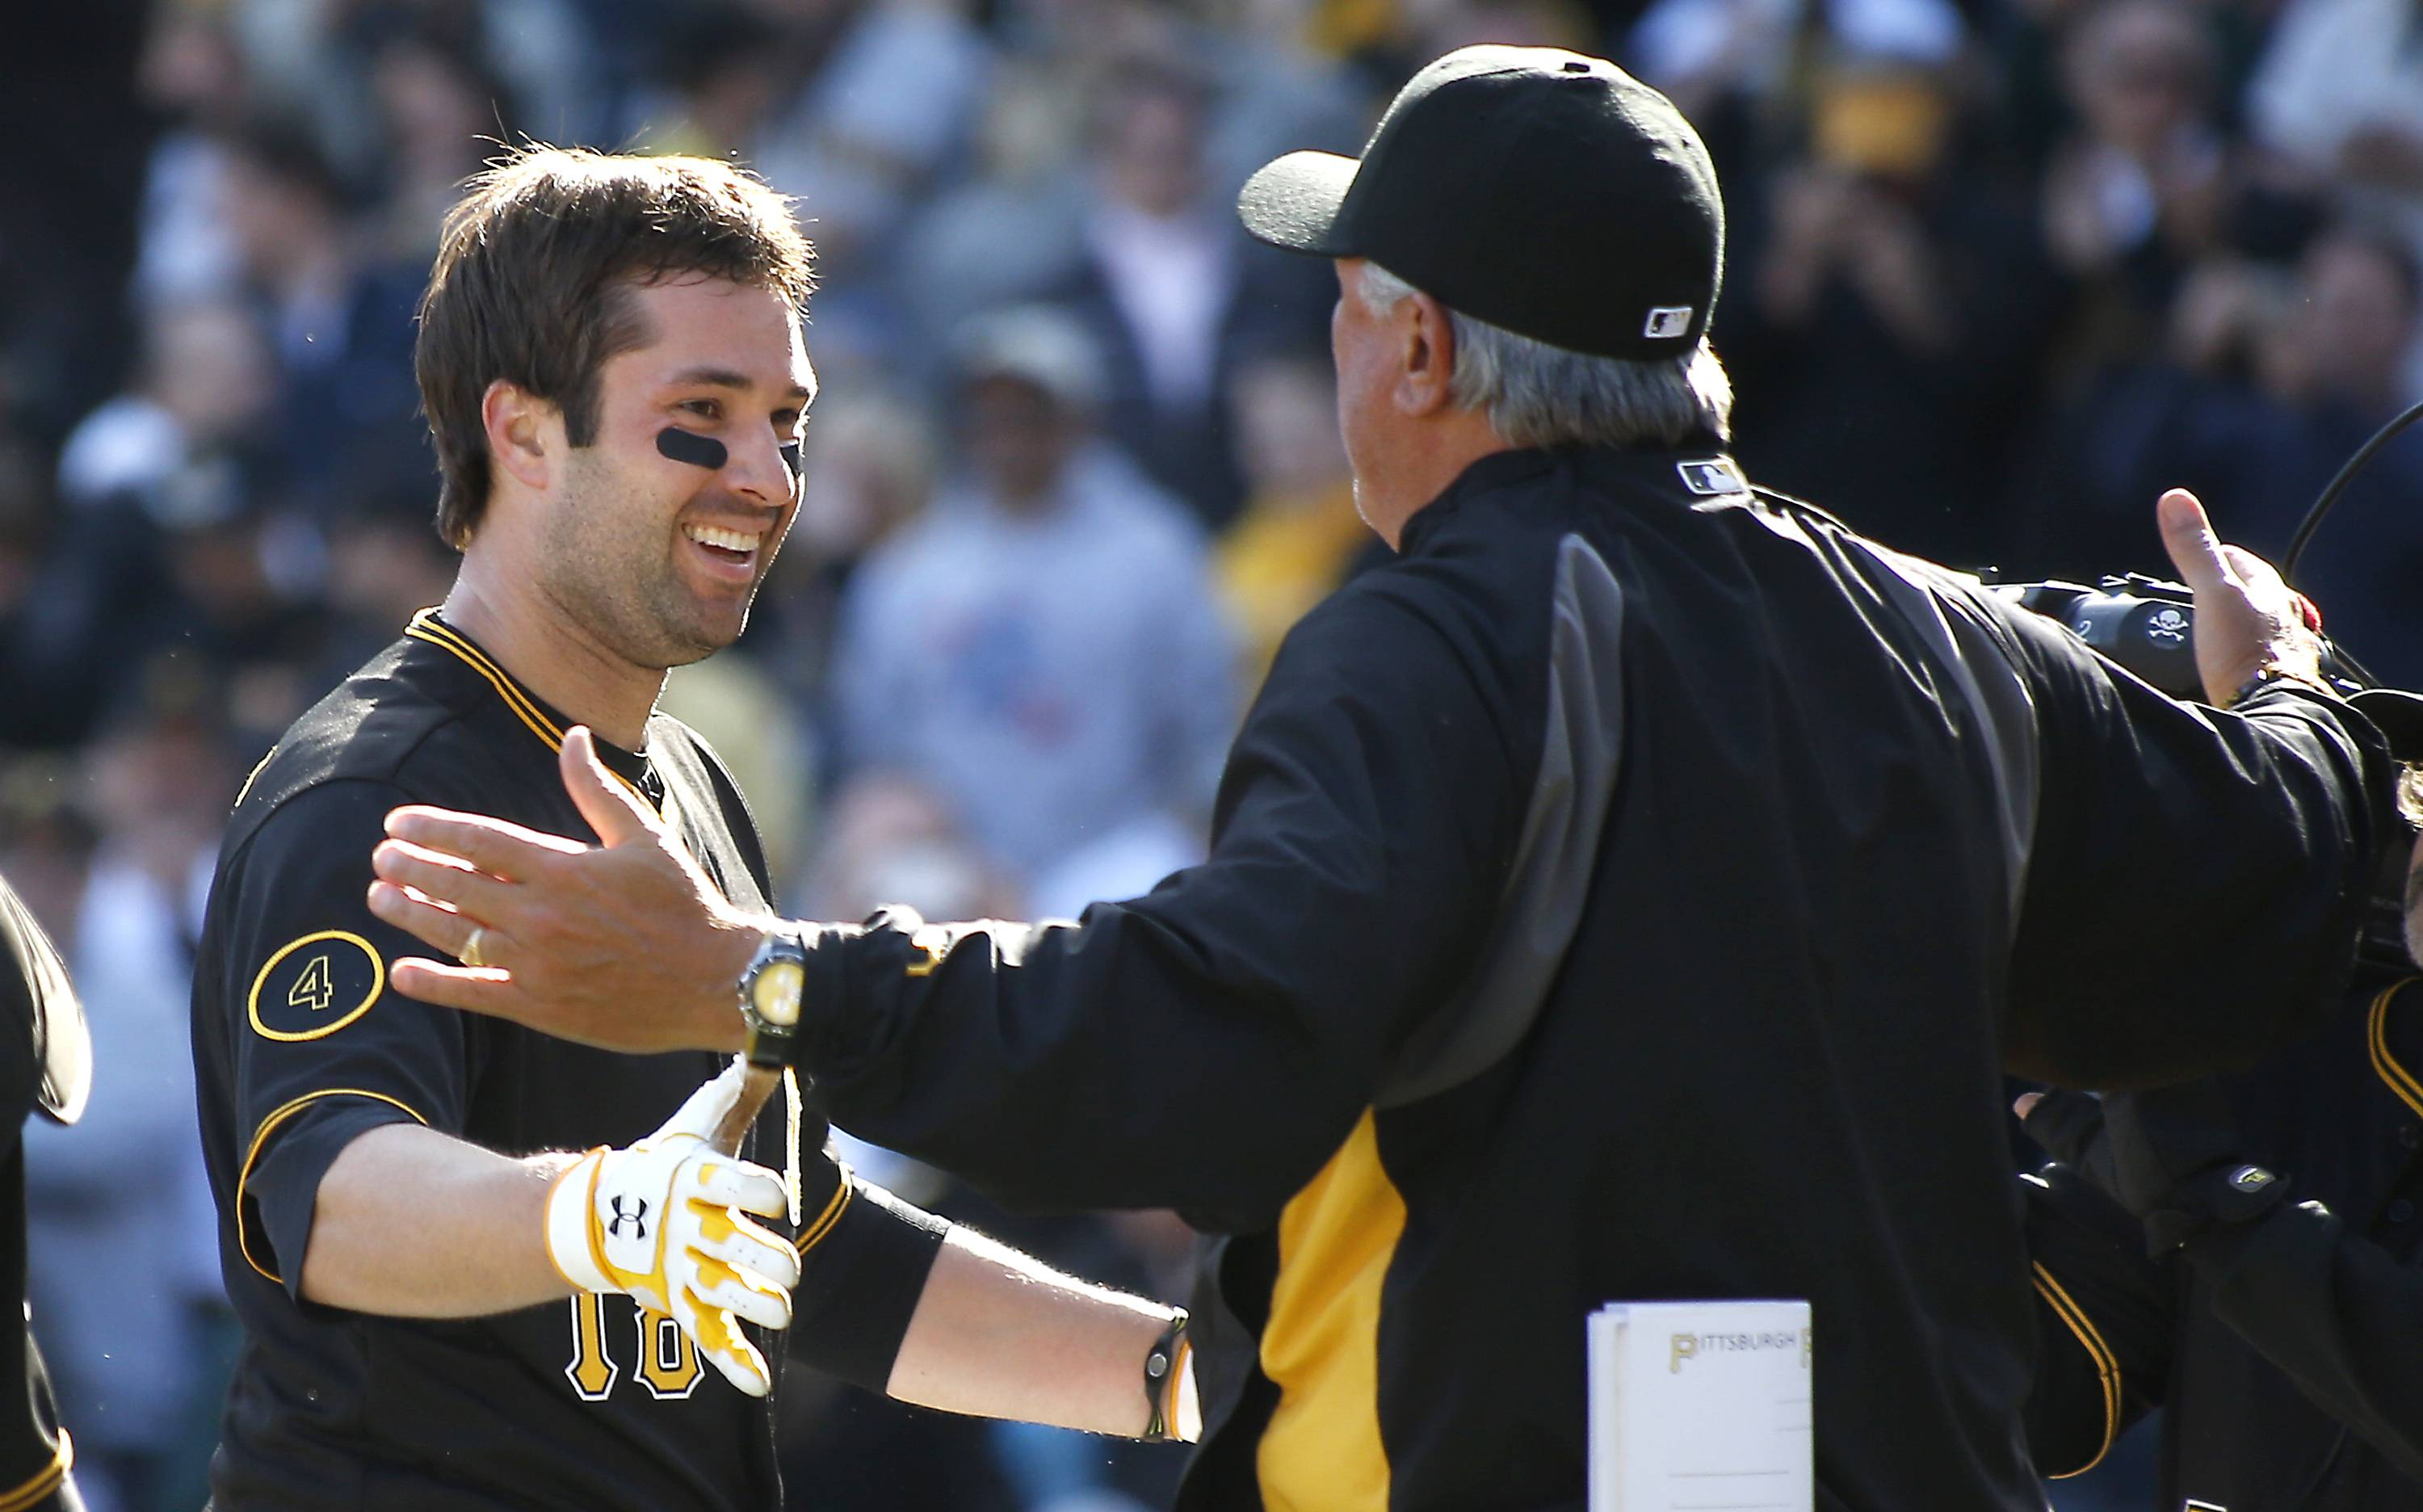 Pittsburgh Pirates' Neil Walker, left, is greeted by manager Clint Hurdle after hitting the game winning home run in the tenth inning .